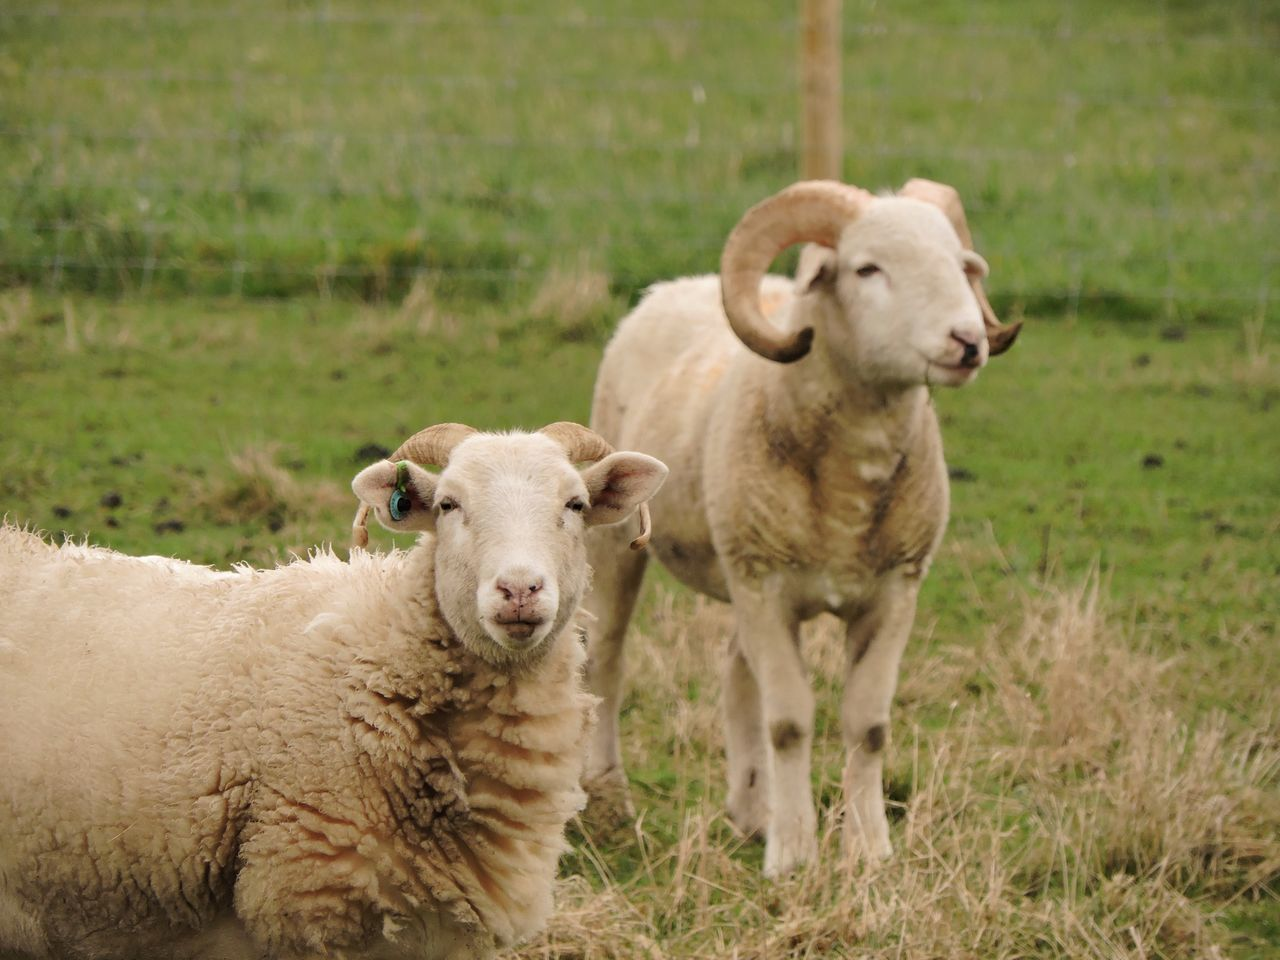 Animal Animal Family Animal Themes Close-up Day Field Focus On Foreground Focus On Foreground,shallow Focus Grass Grassy Horned Landscape Mammal Nature No People Outdoors Portrait Rams Sheep Wiltshire Horns Young Animal